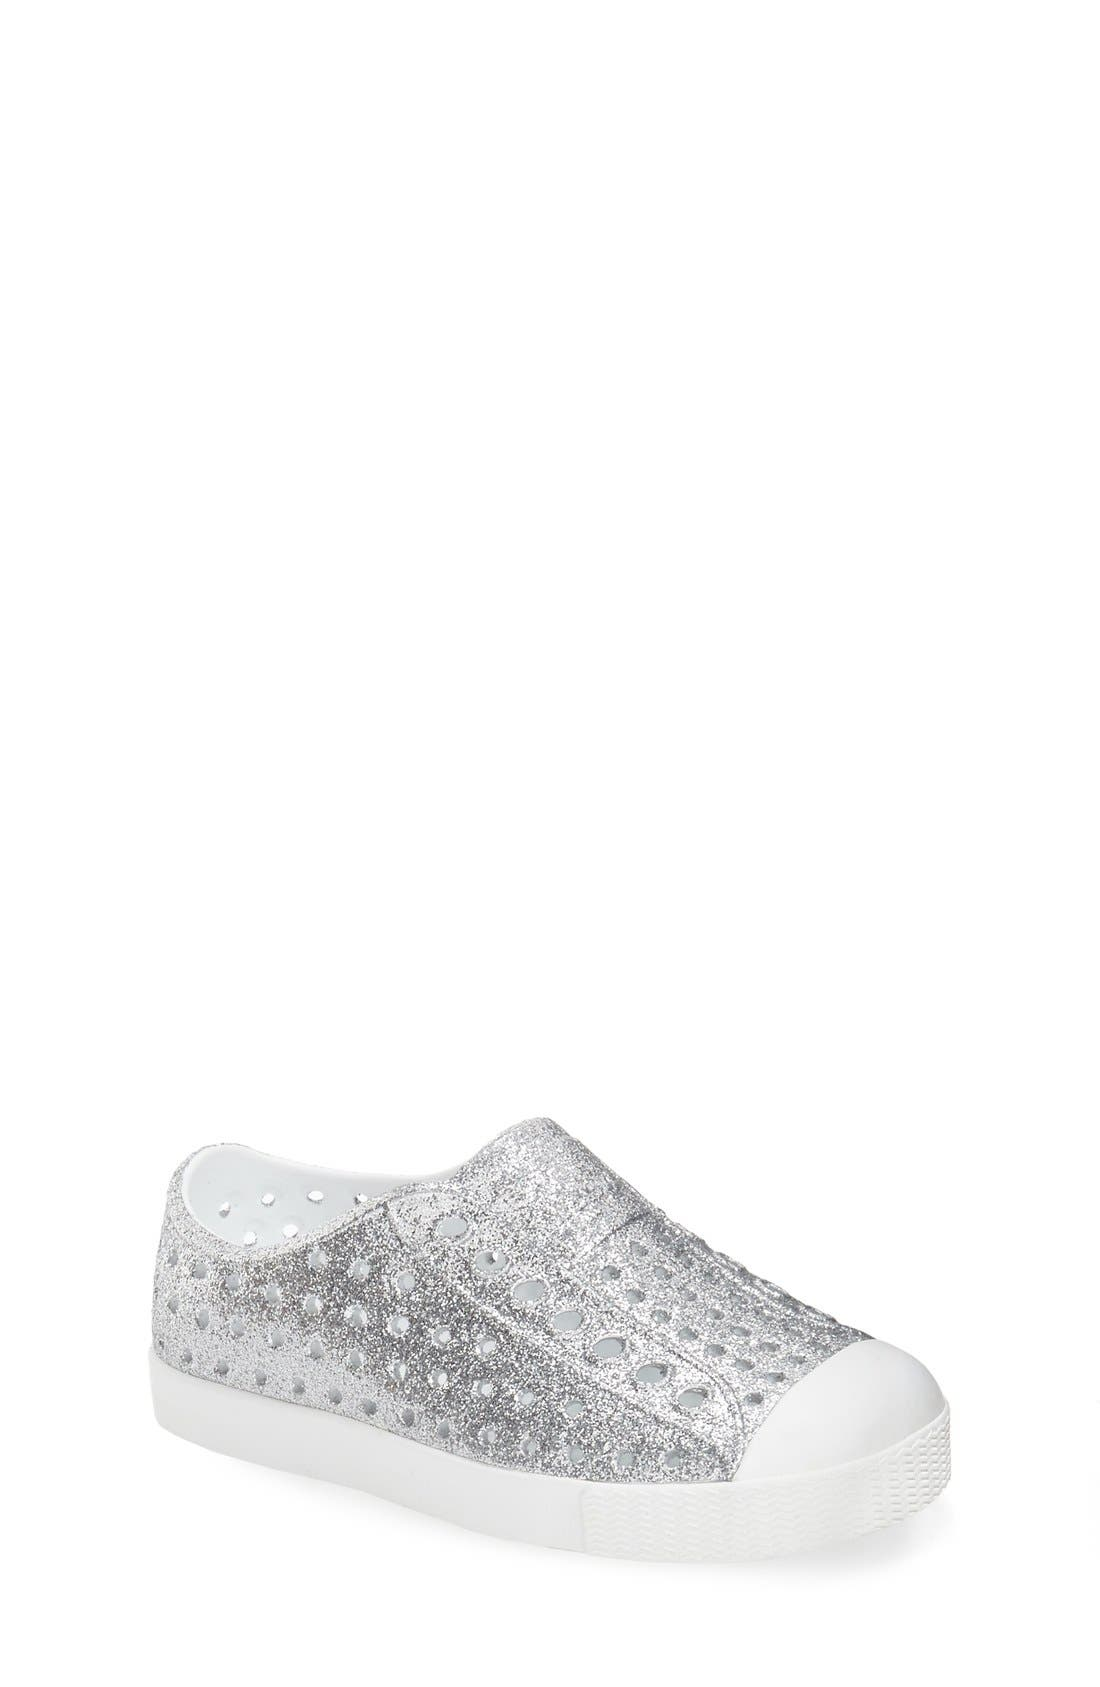 Native Shoes 'Jefferson - Bling' Slip-On Sneaker (Baby, Walker, Toddler & Little Kid)